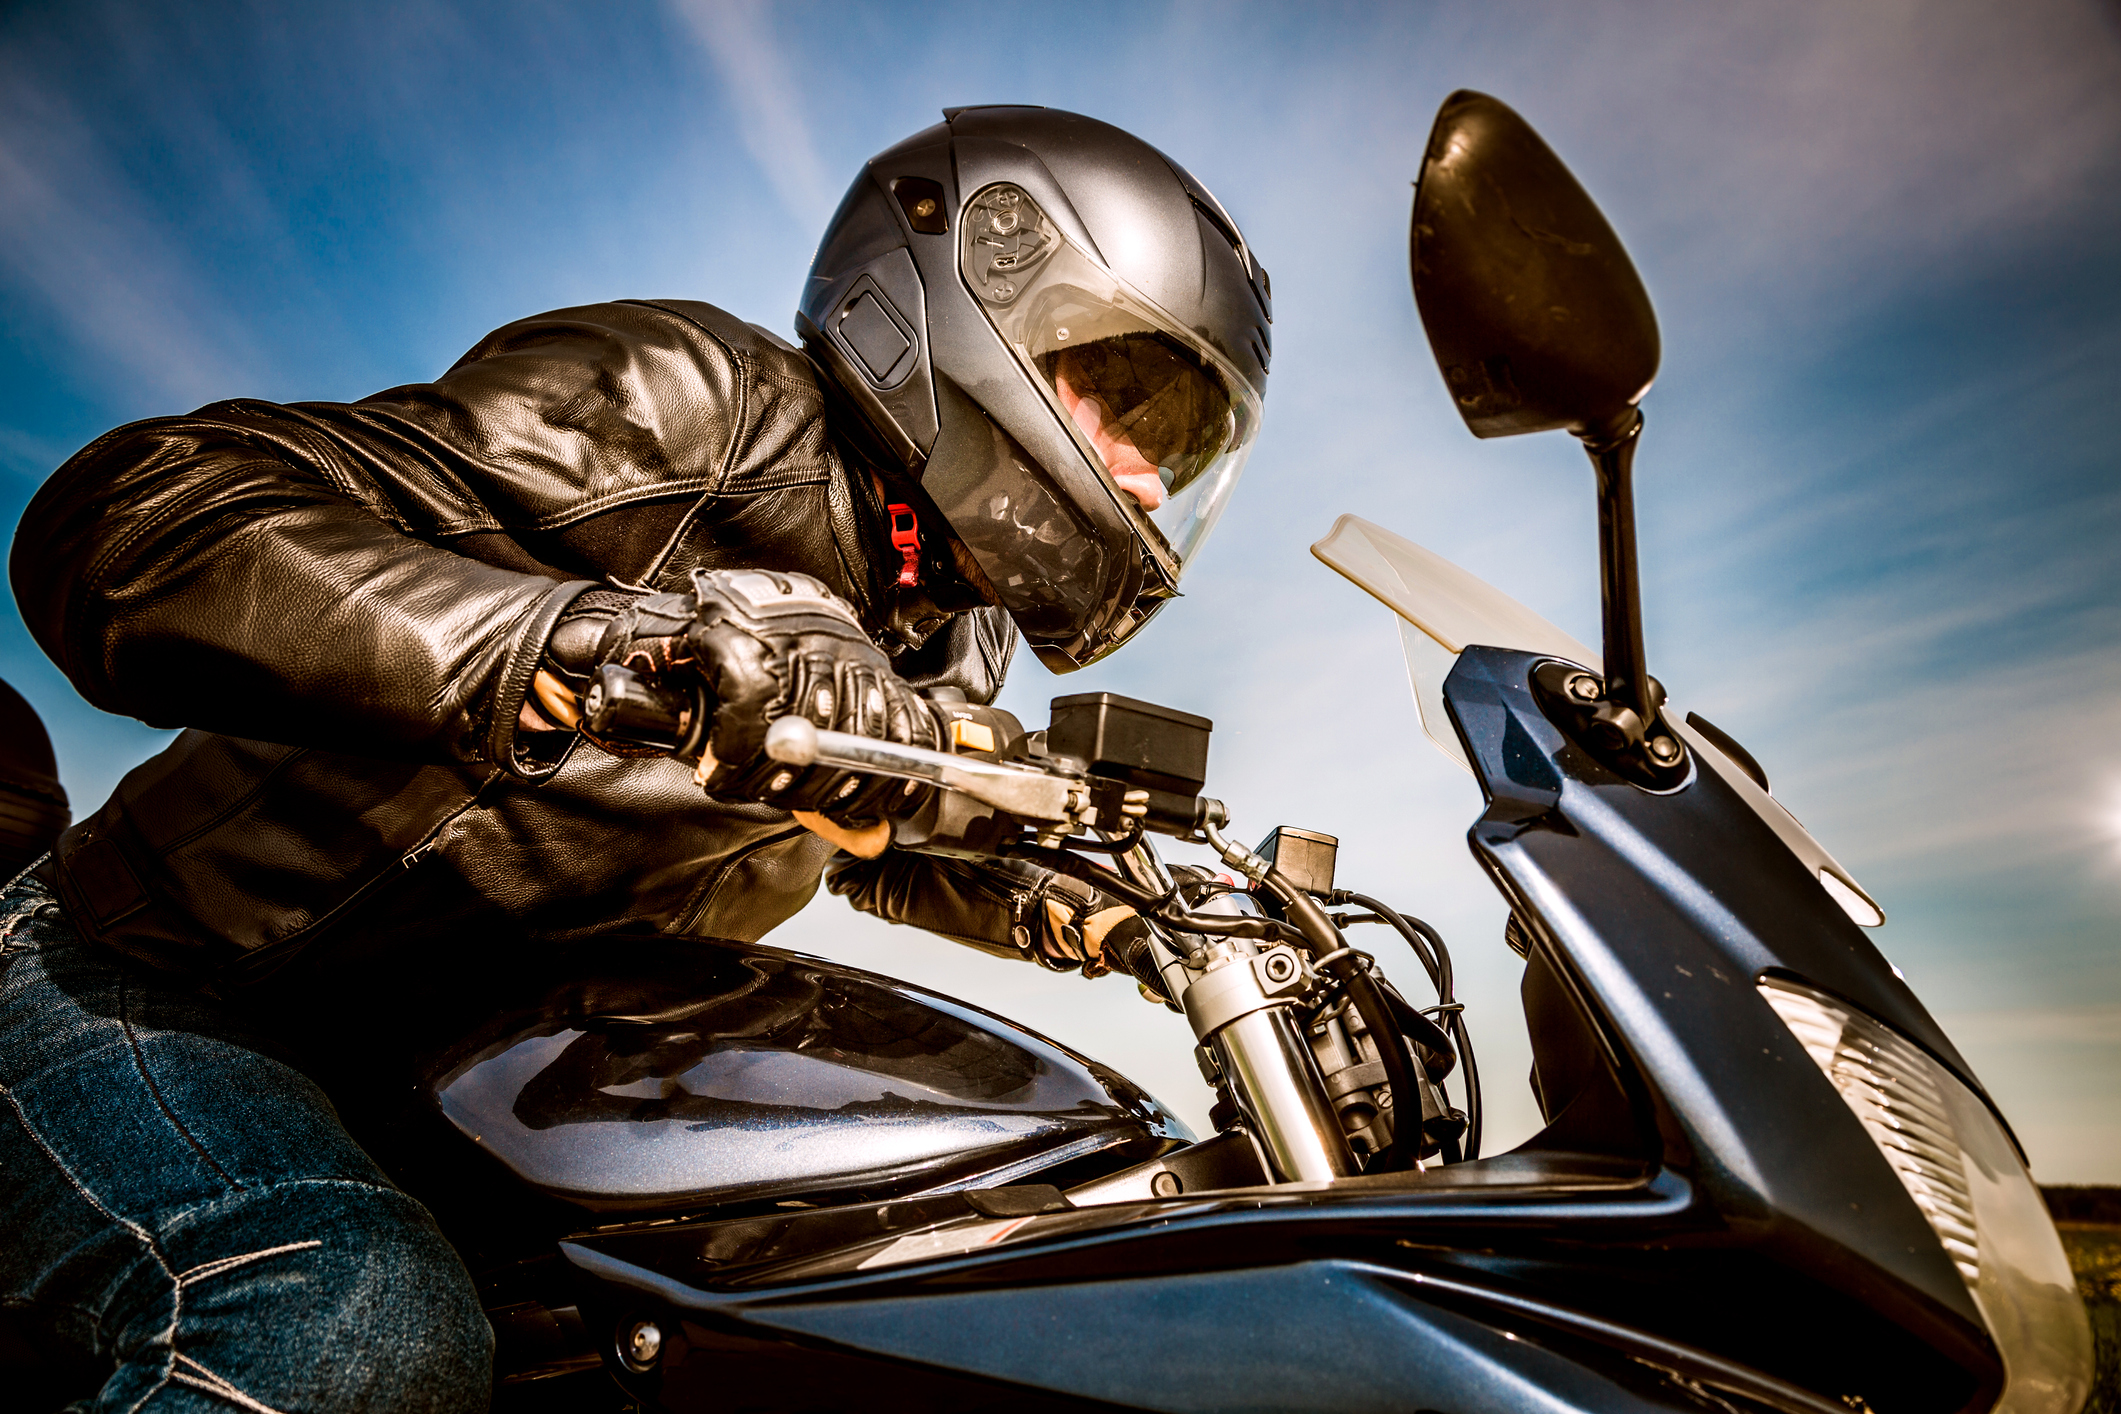 Ergonomic Tips to Avoid Motorcycle Riding Injuries